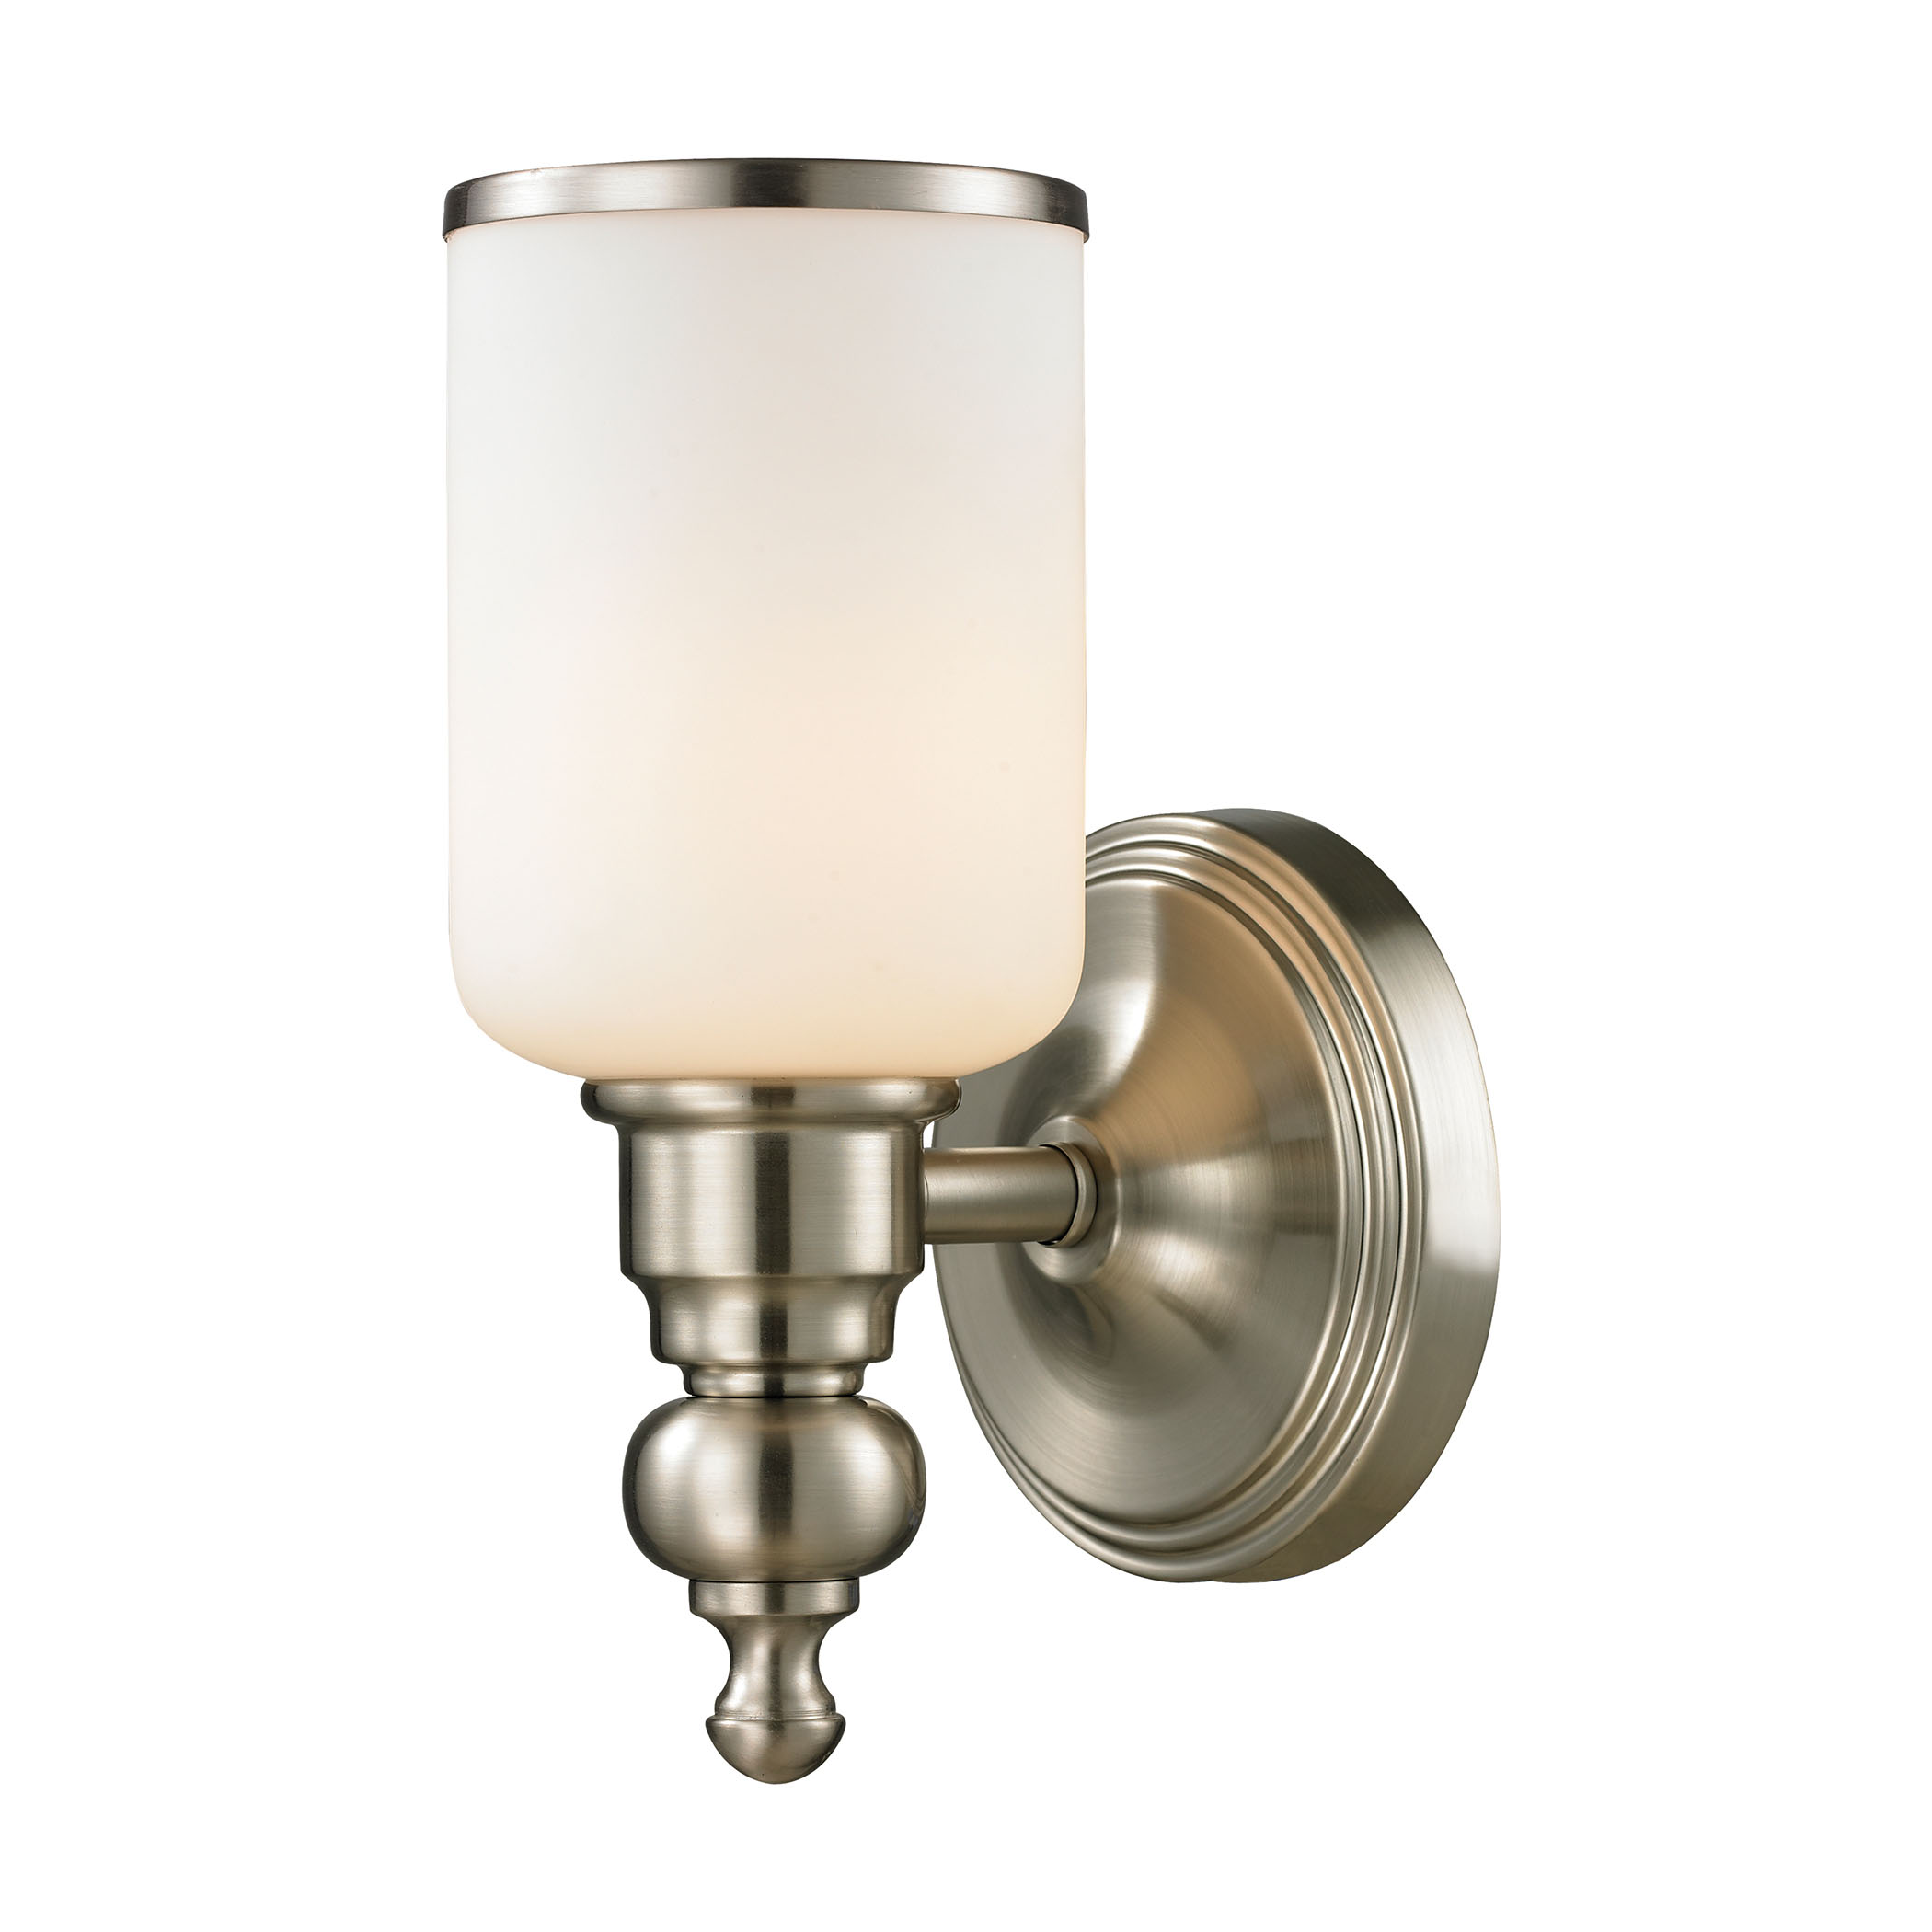 Bristol Collection 1 Light Bath in Brushed Nickel